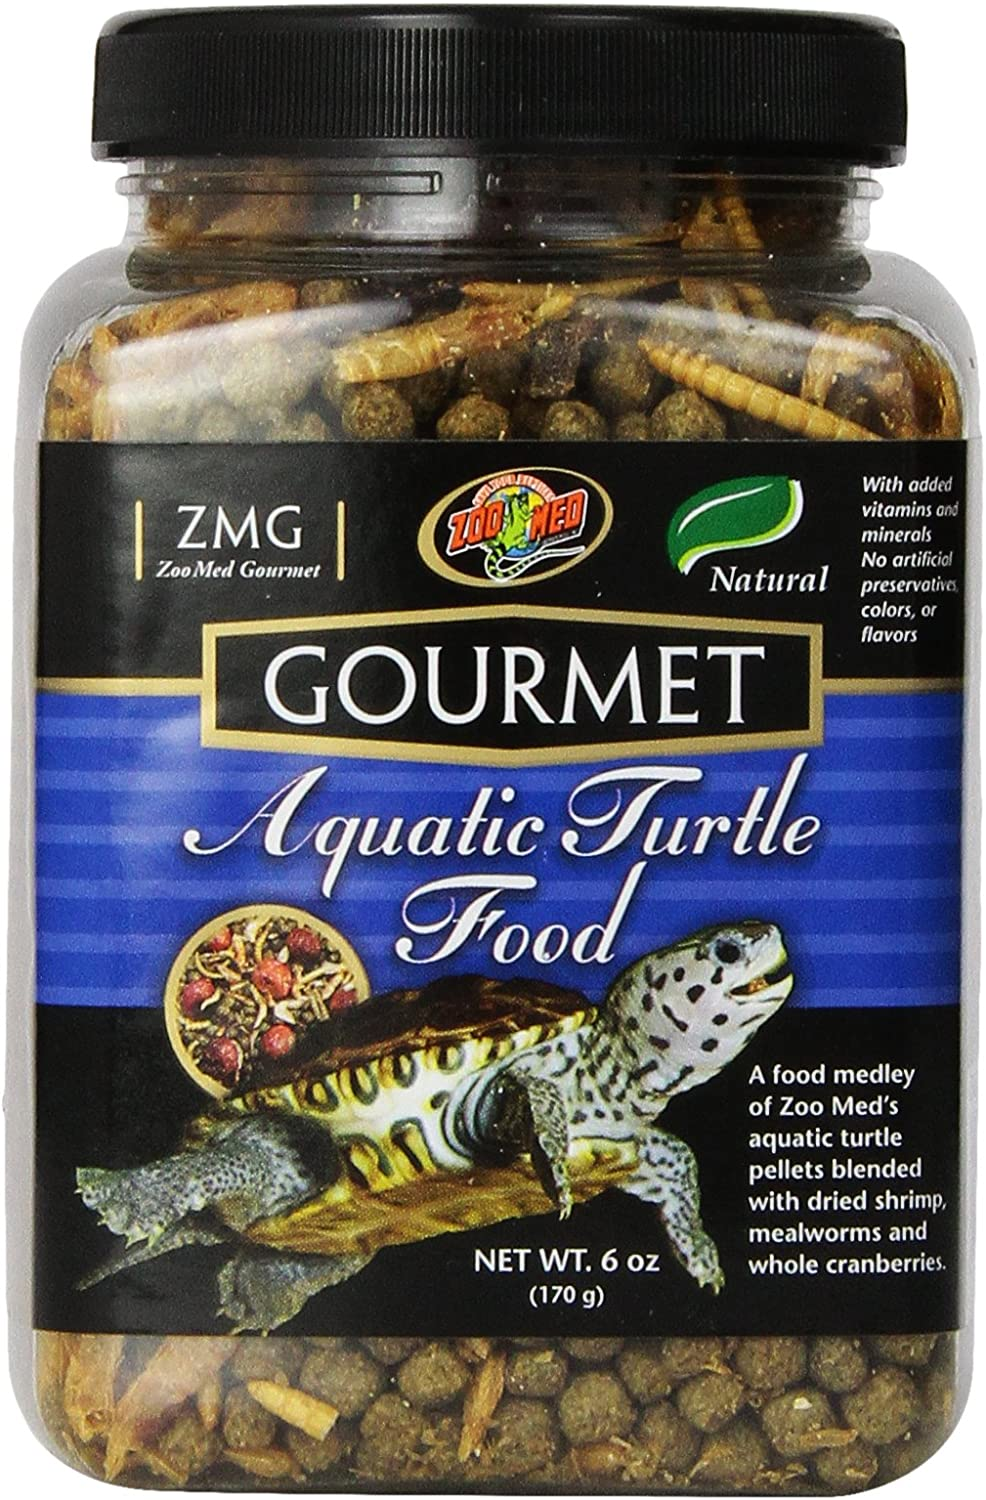 Royal Pet Supplies Inc Zoo Med Gourmet Aquatic Turtle Food